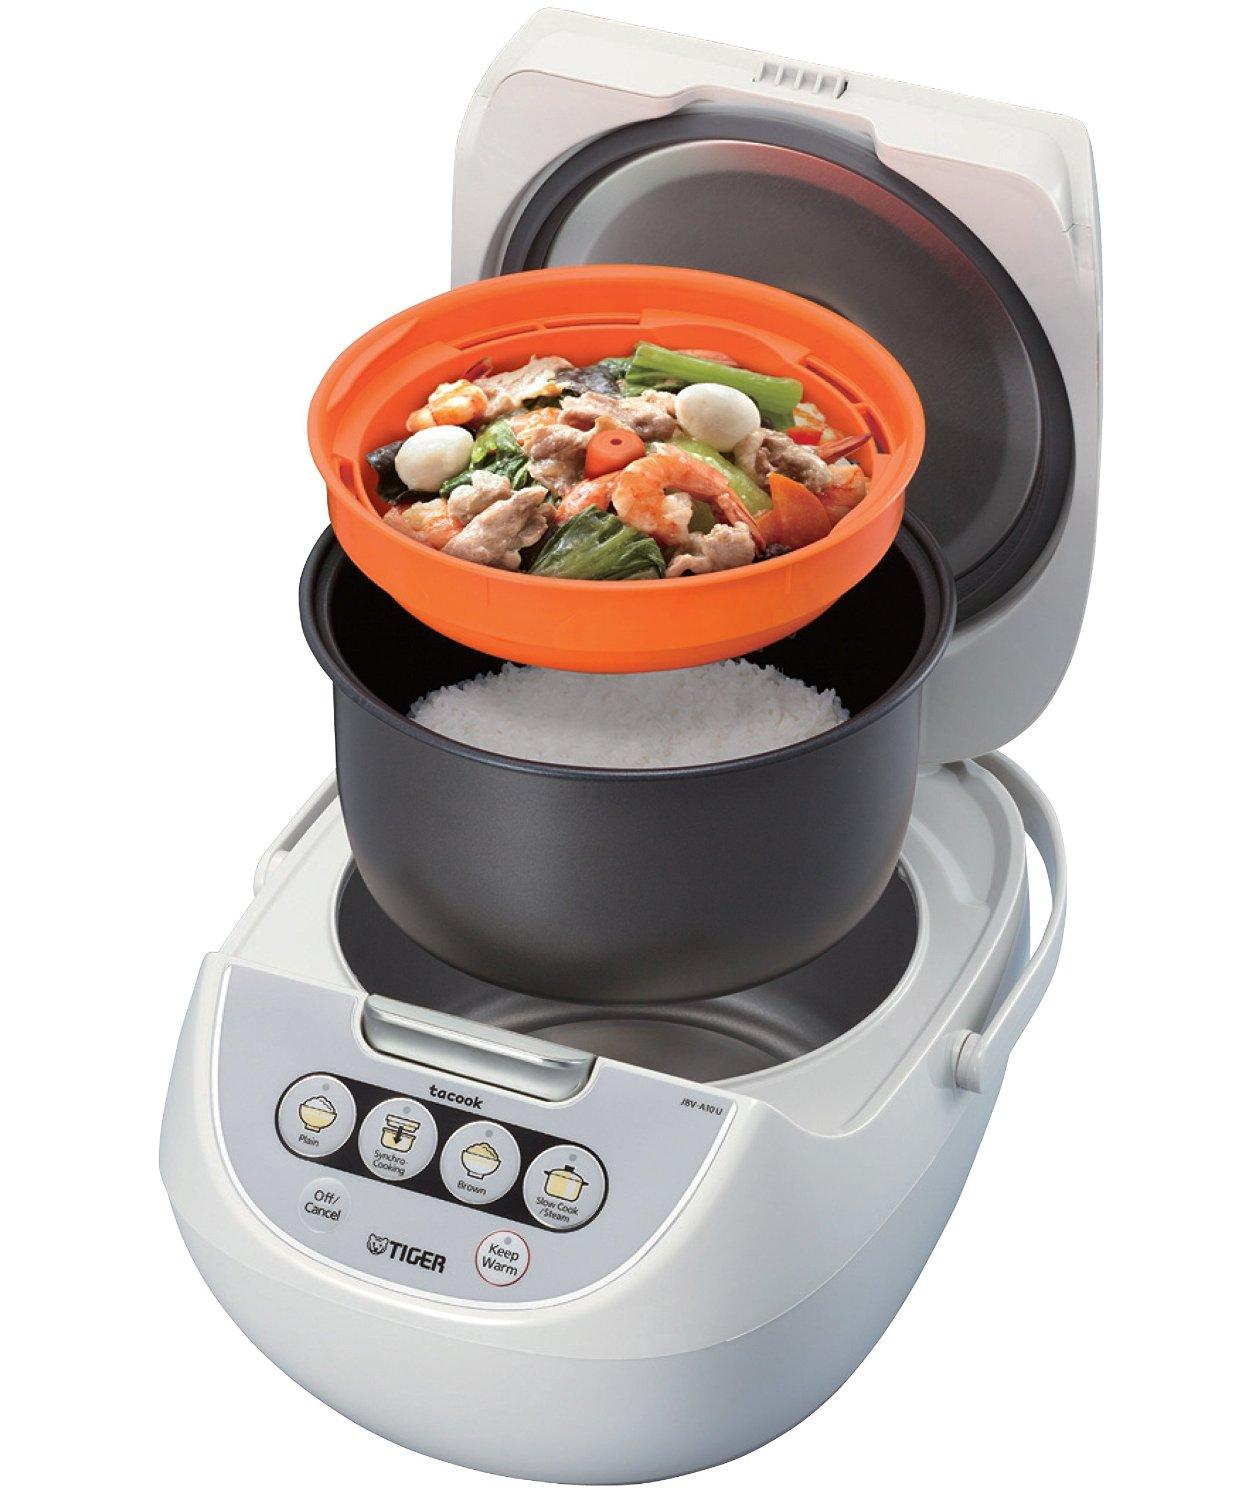 Tiger Micom Rice Cooker with Tacook JBV-A18U